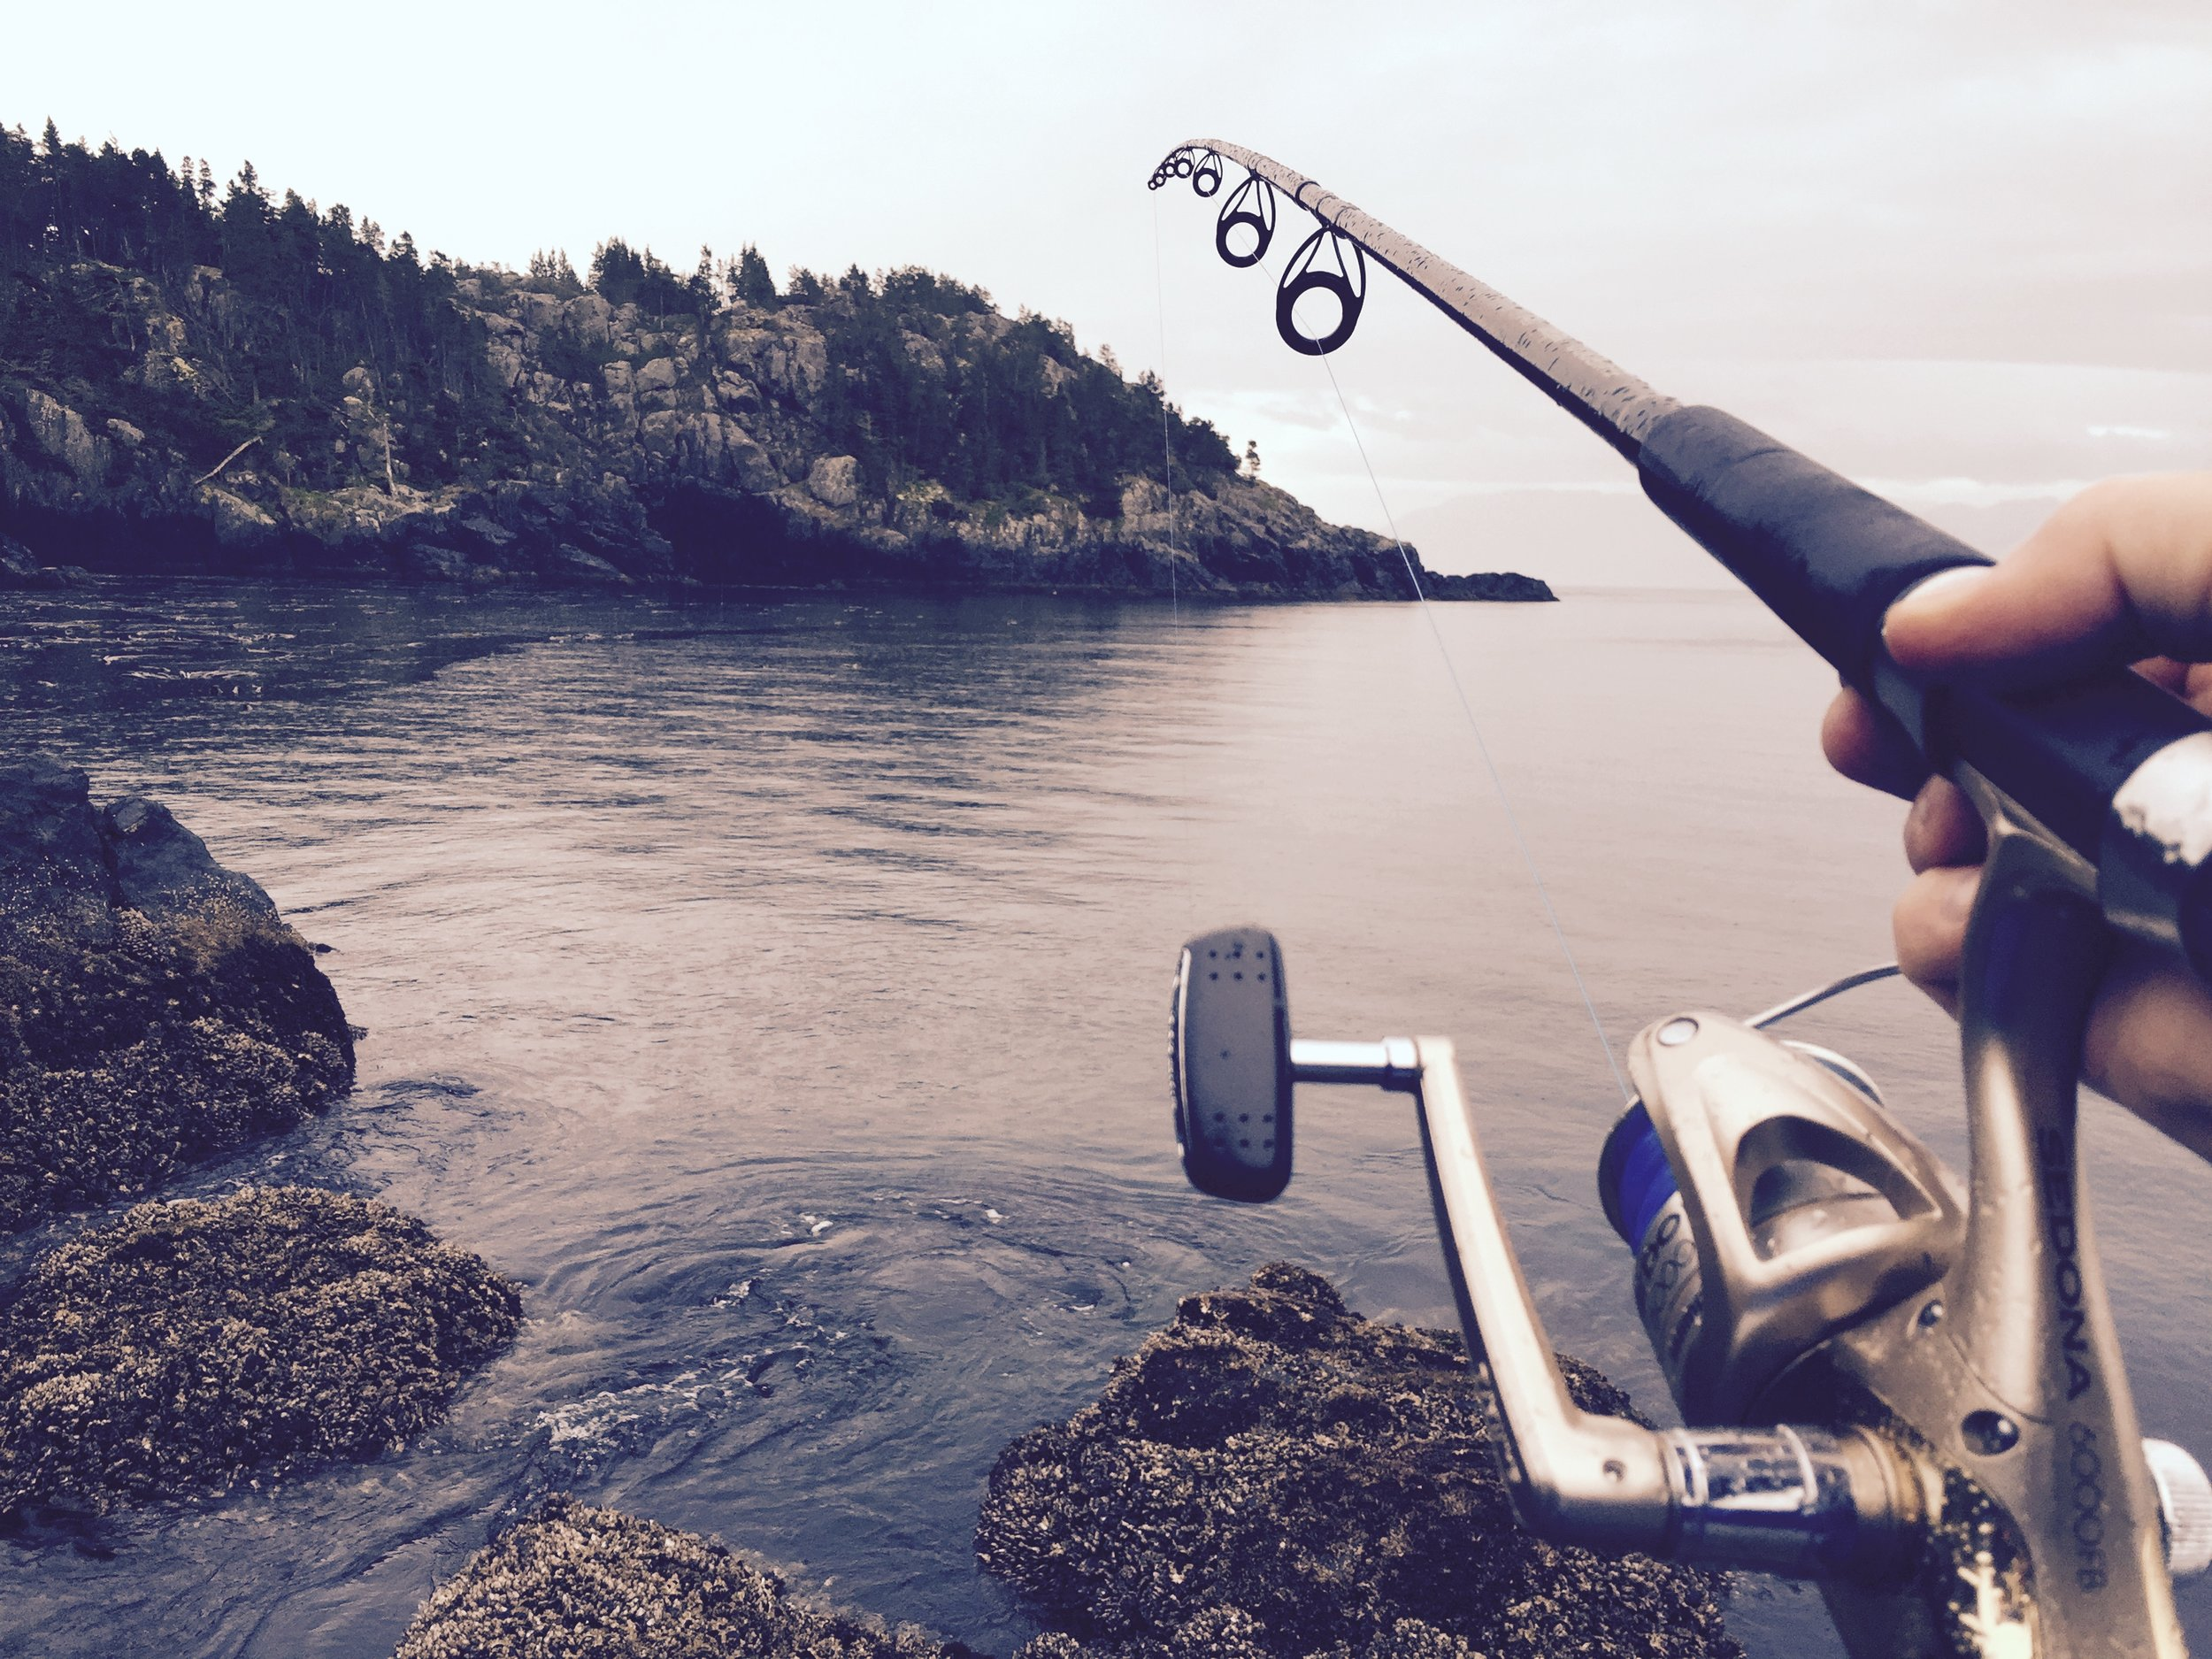 Greater atlantic regional fisheries office - New England recreational fishing workshops - 2019 (Photo courtesy of unsplash)